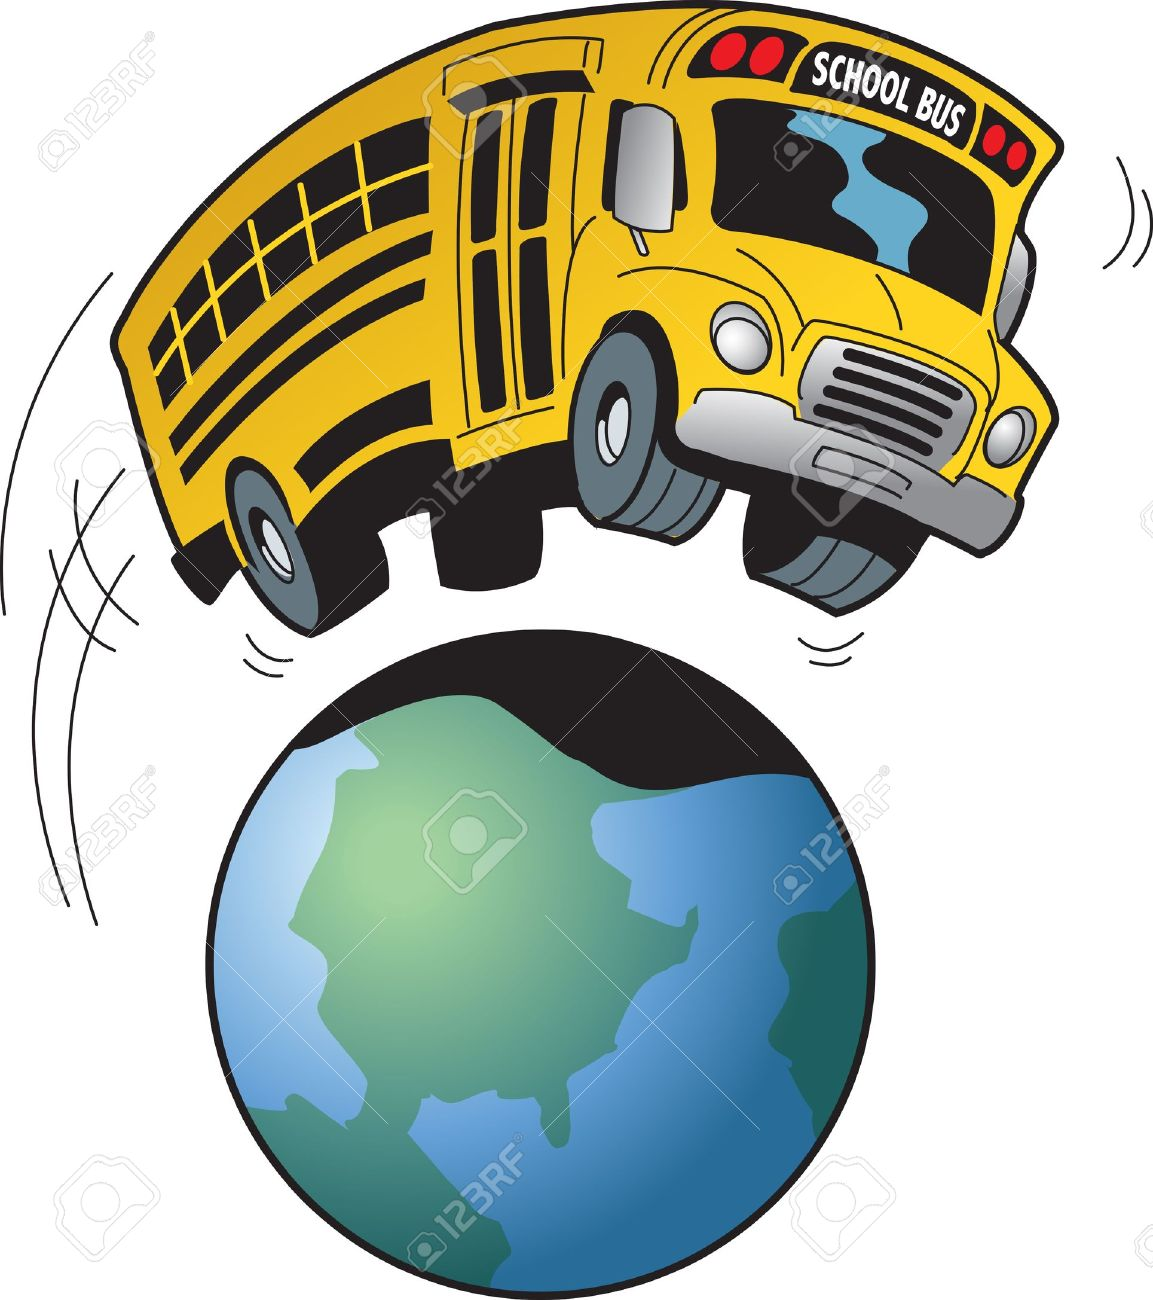 hight resolution of cartoon of a school bus going on a field trip to anywhere in the world stock